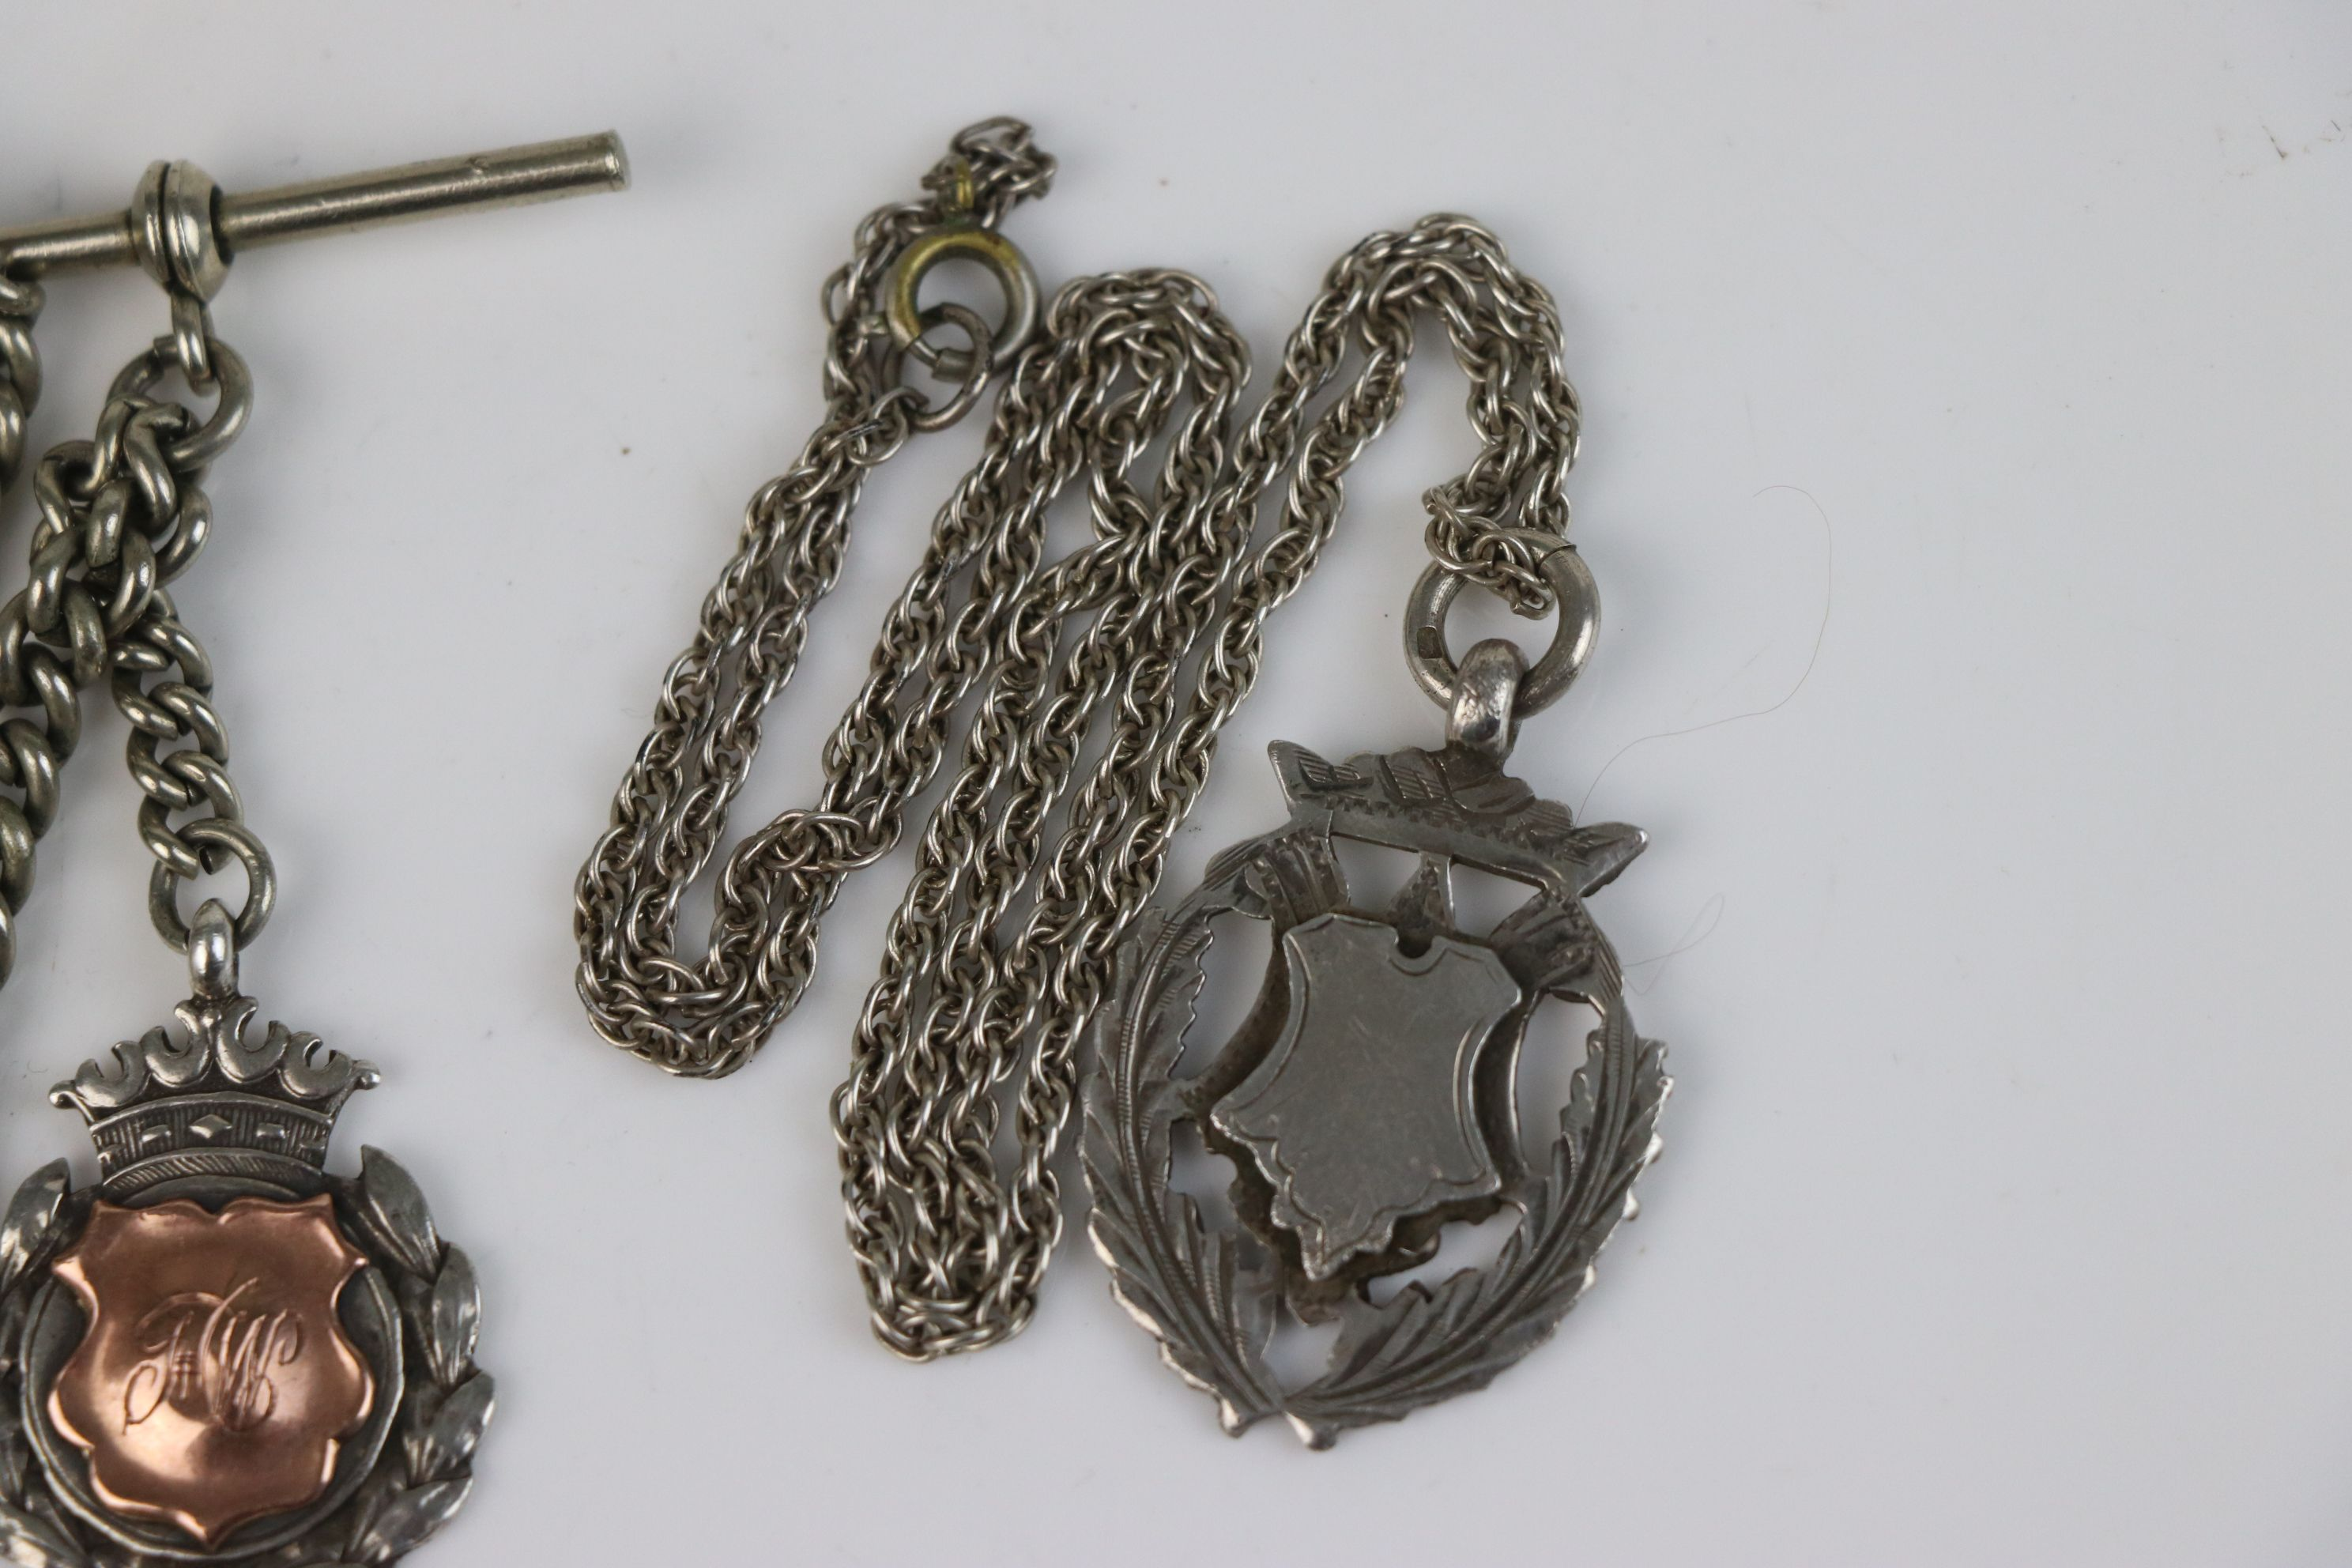 Two fully hallmarked sterling silver watch fob medallions together with an Albert chain. - Image 4 of 5